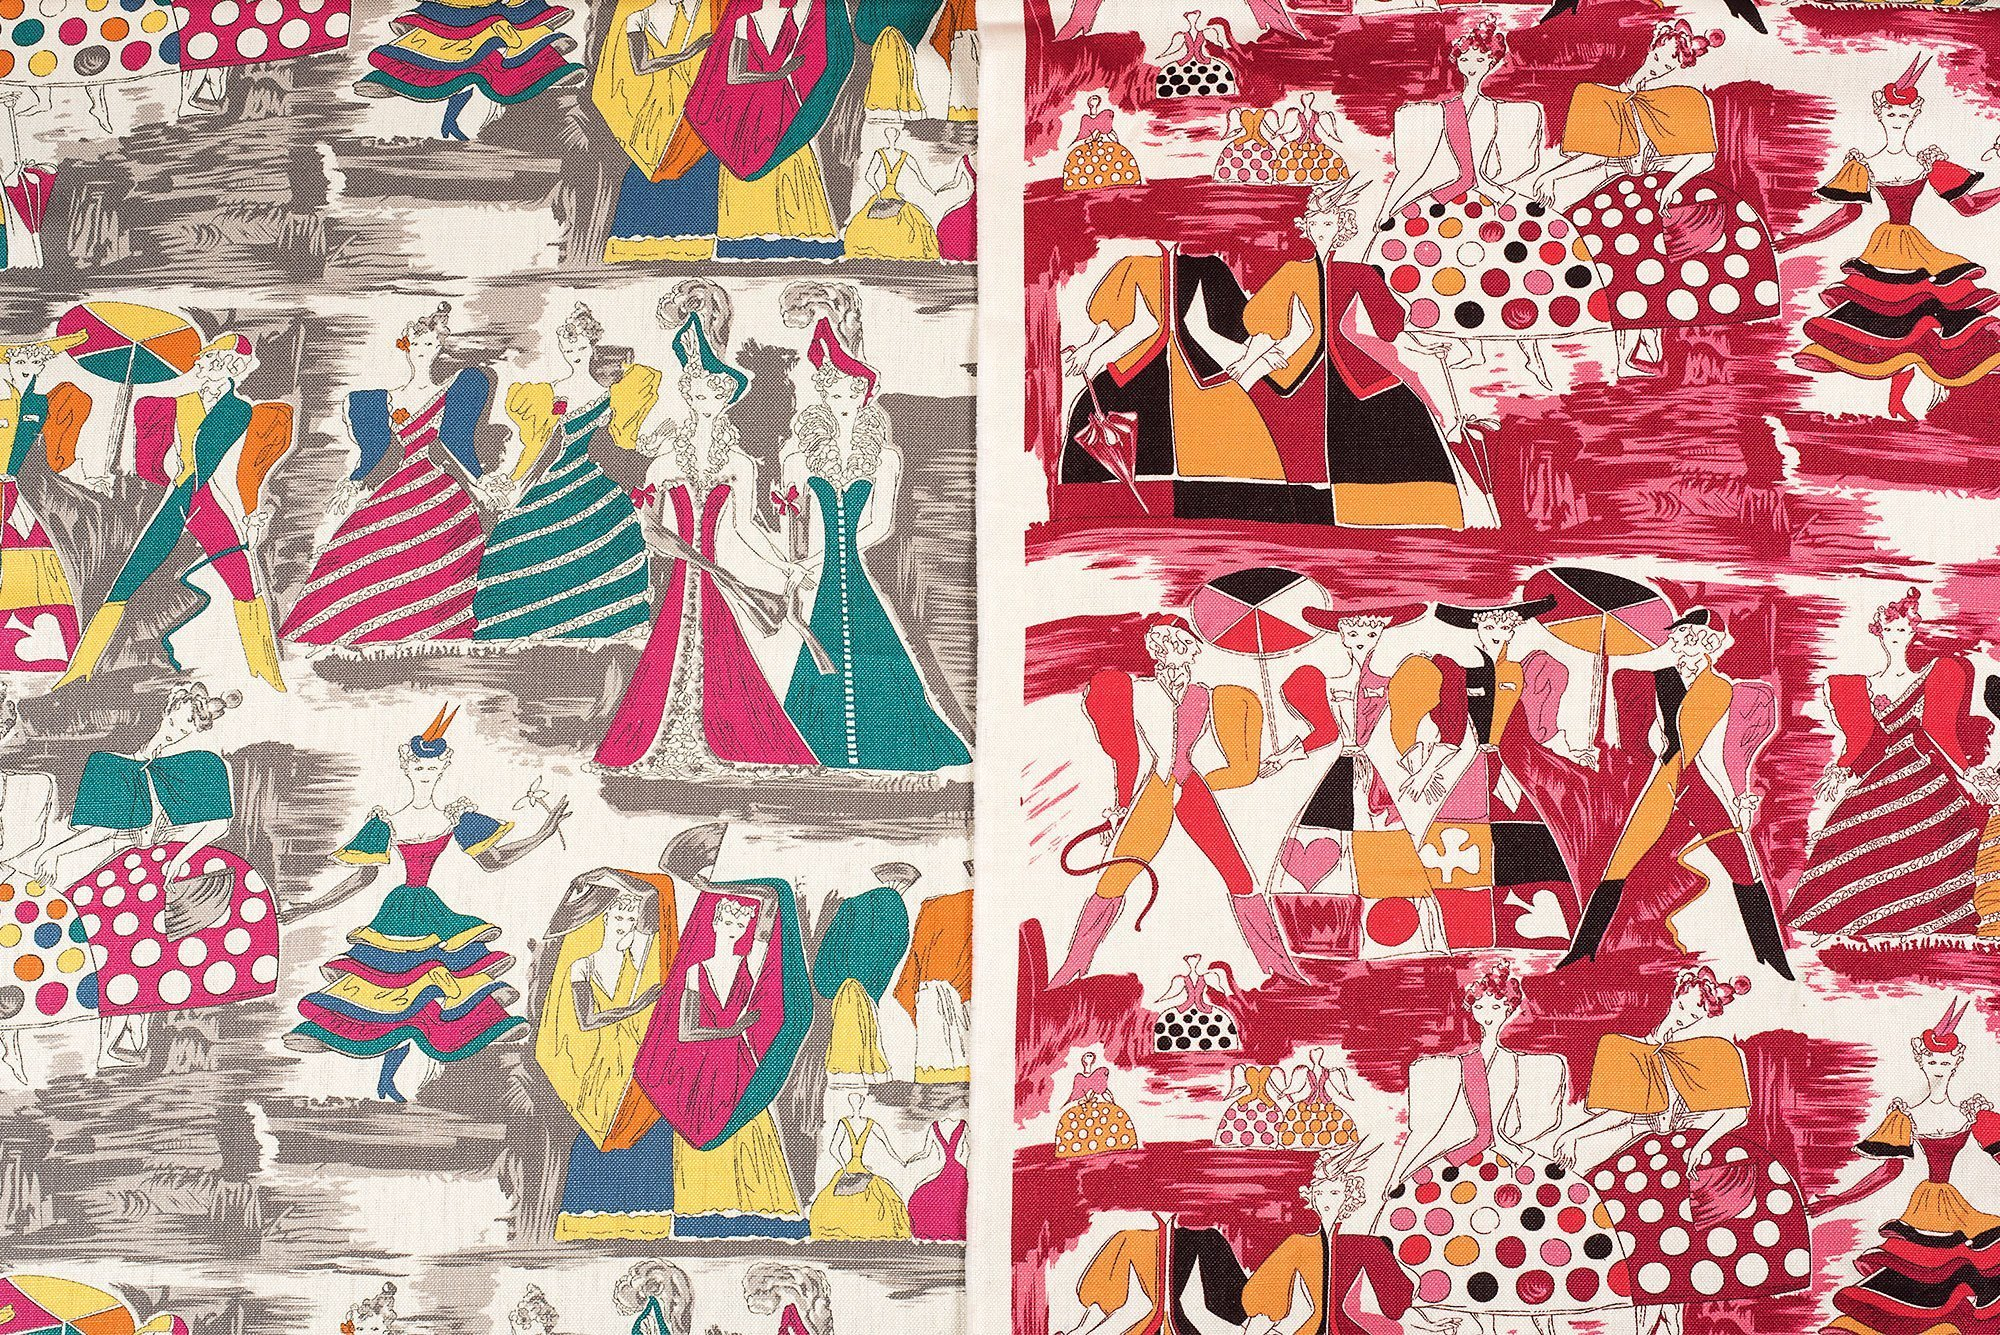 Gio Ponti |                              Balletto Alla Scala fabric